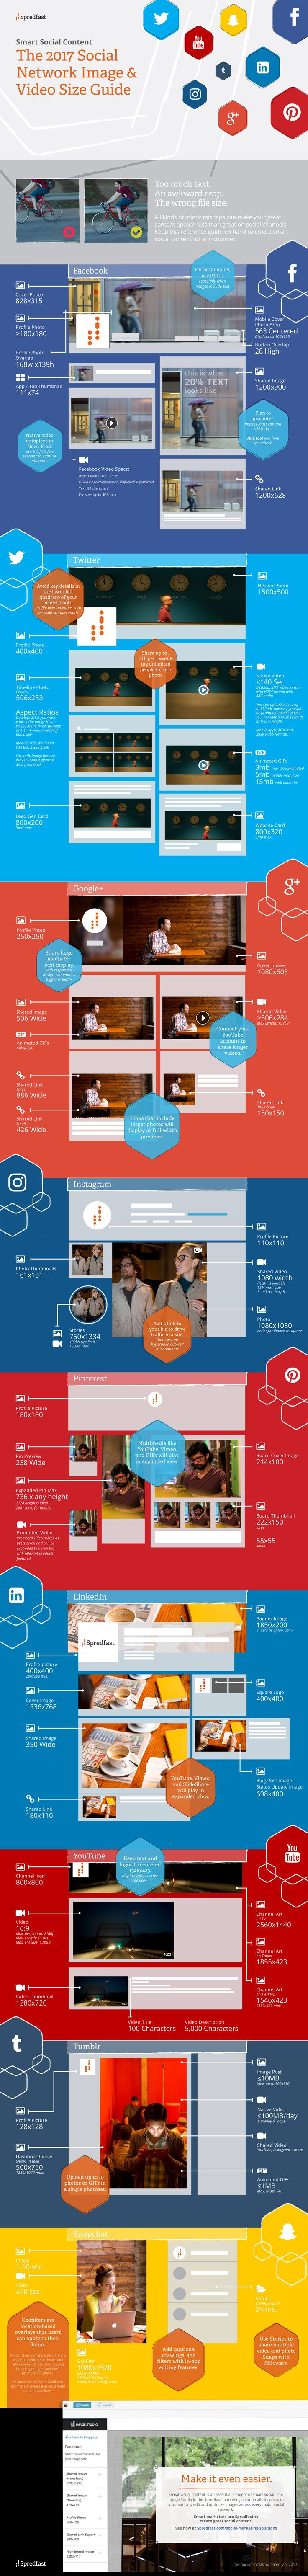 The 2017 Social Network Image and Video Size Guide